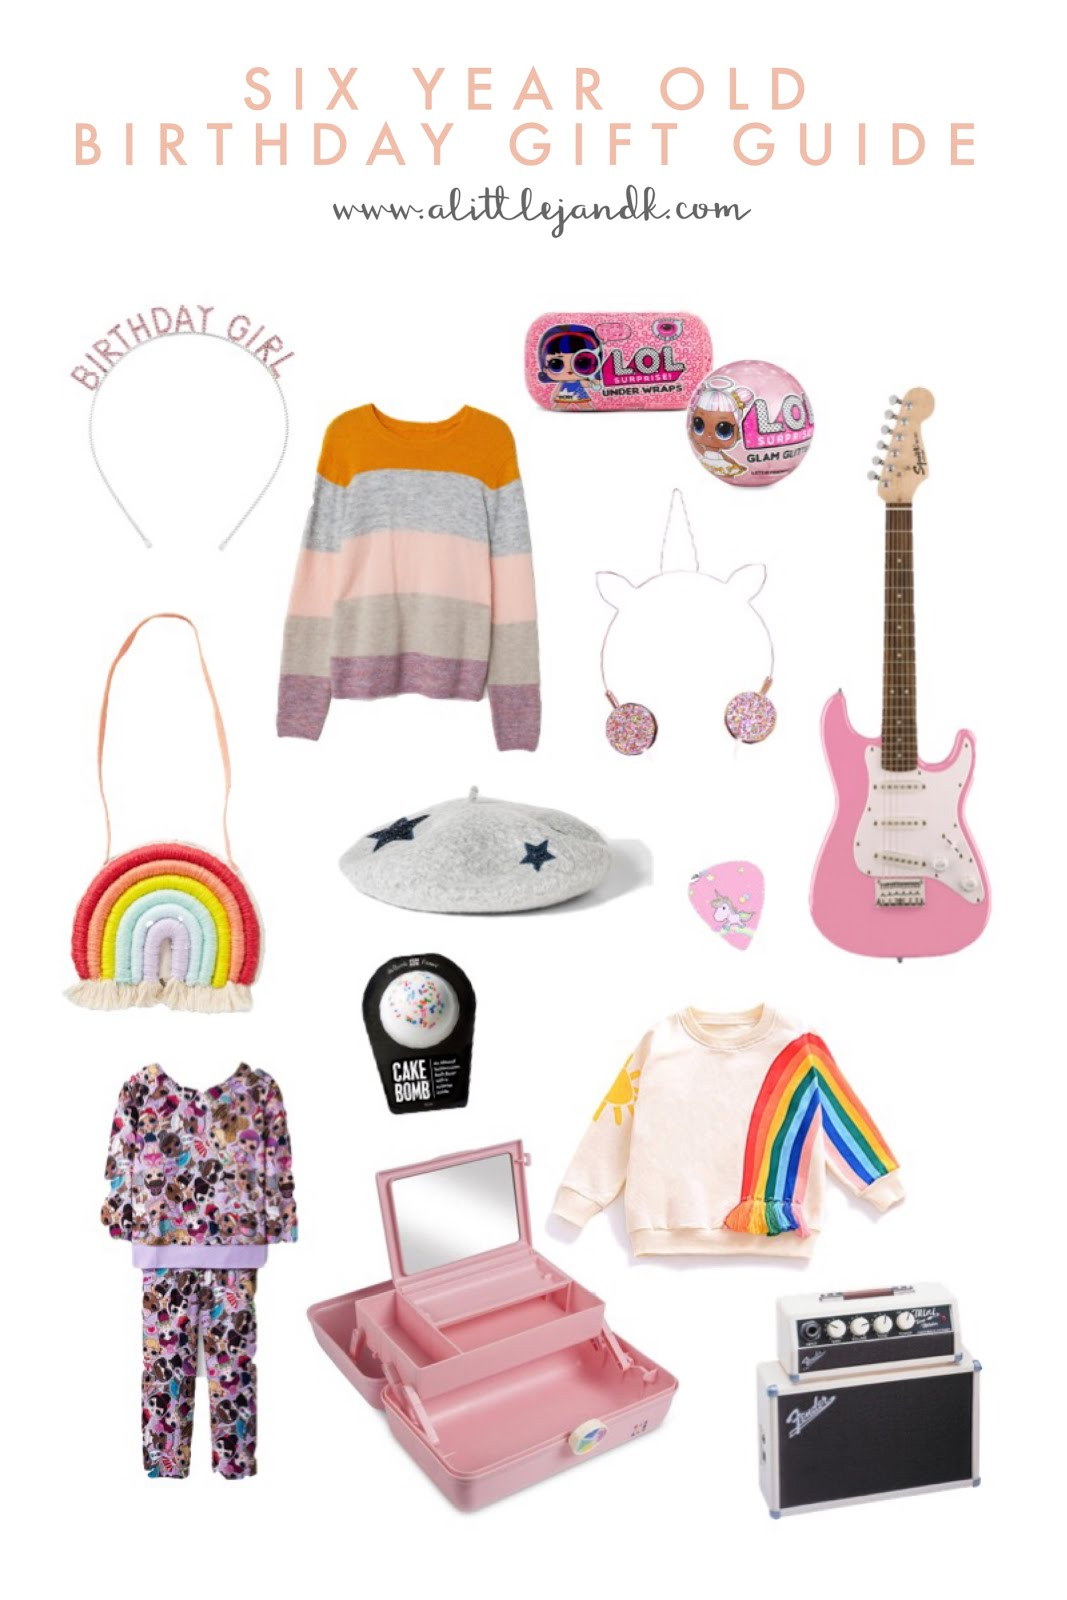 Six Year Old Birthday Gift Guide